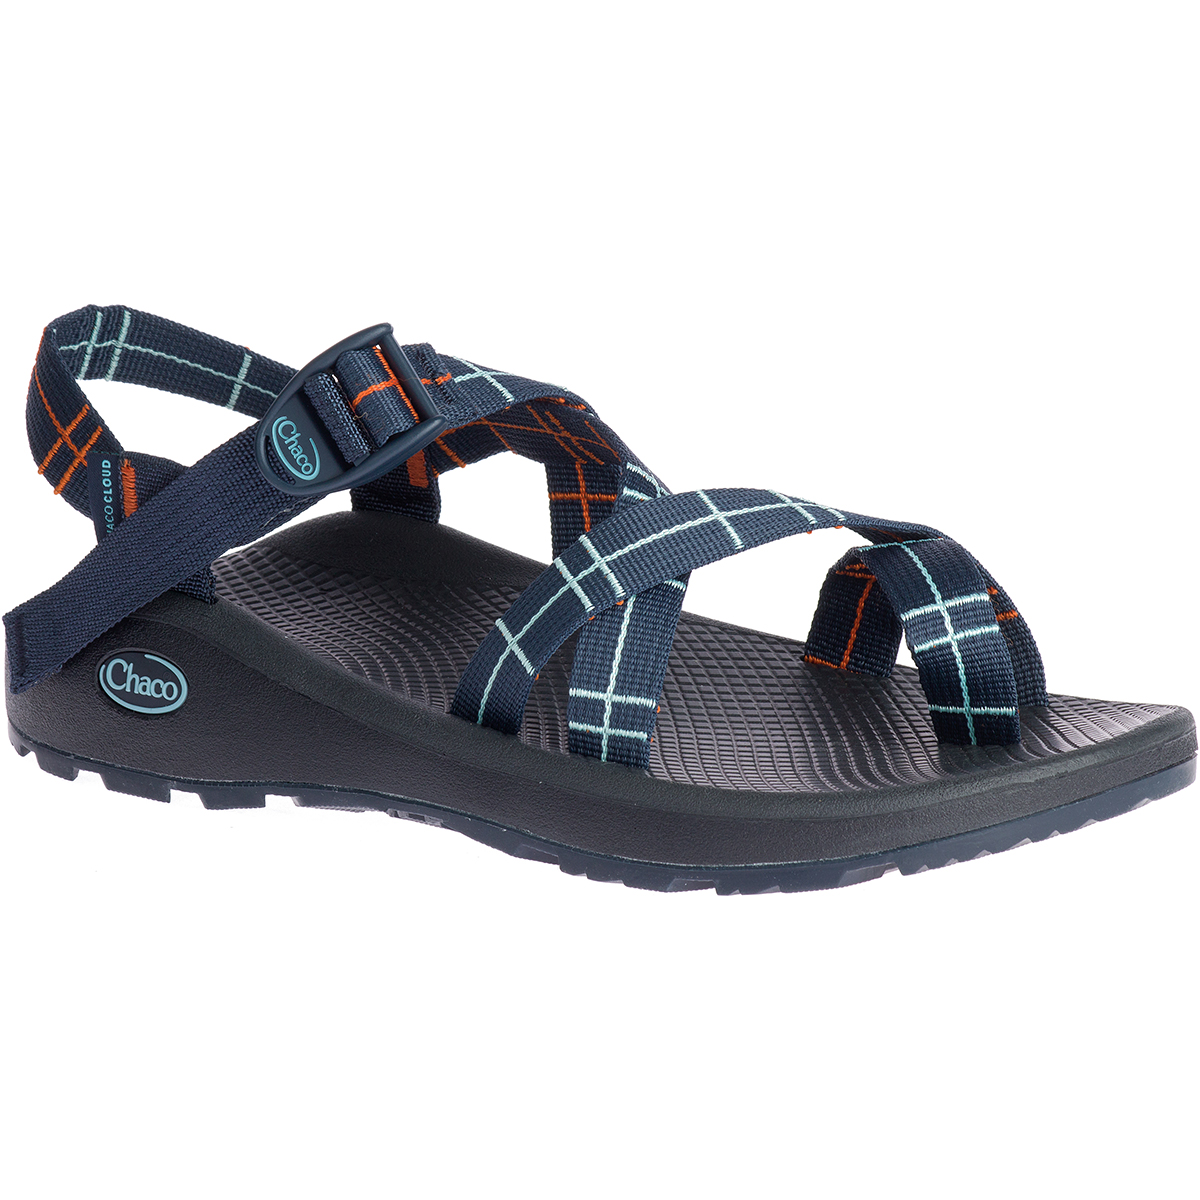 Chaco Men's Z Cloud 2 Sandals - Blue, 11